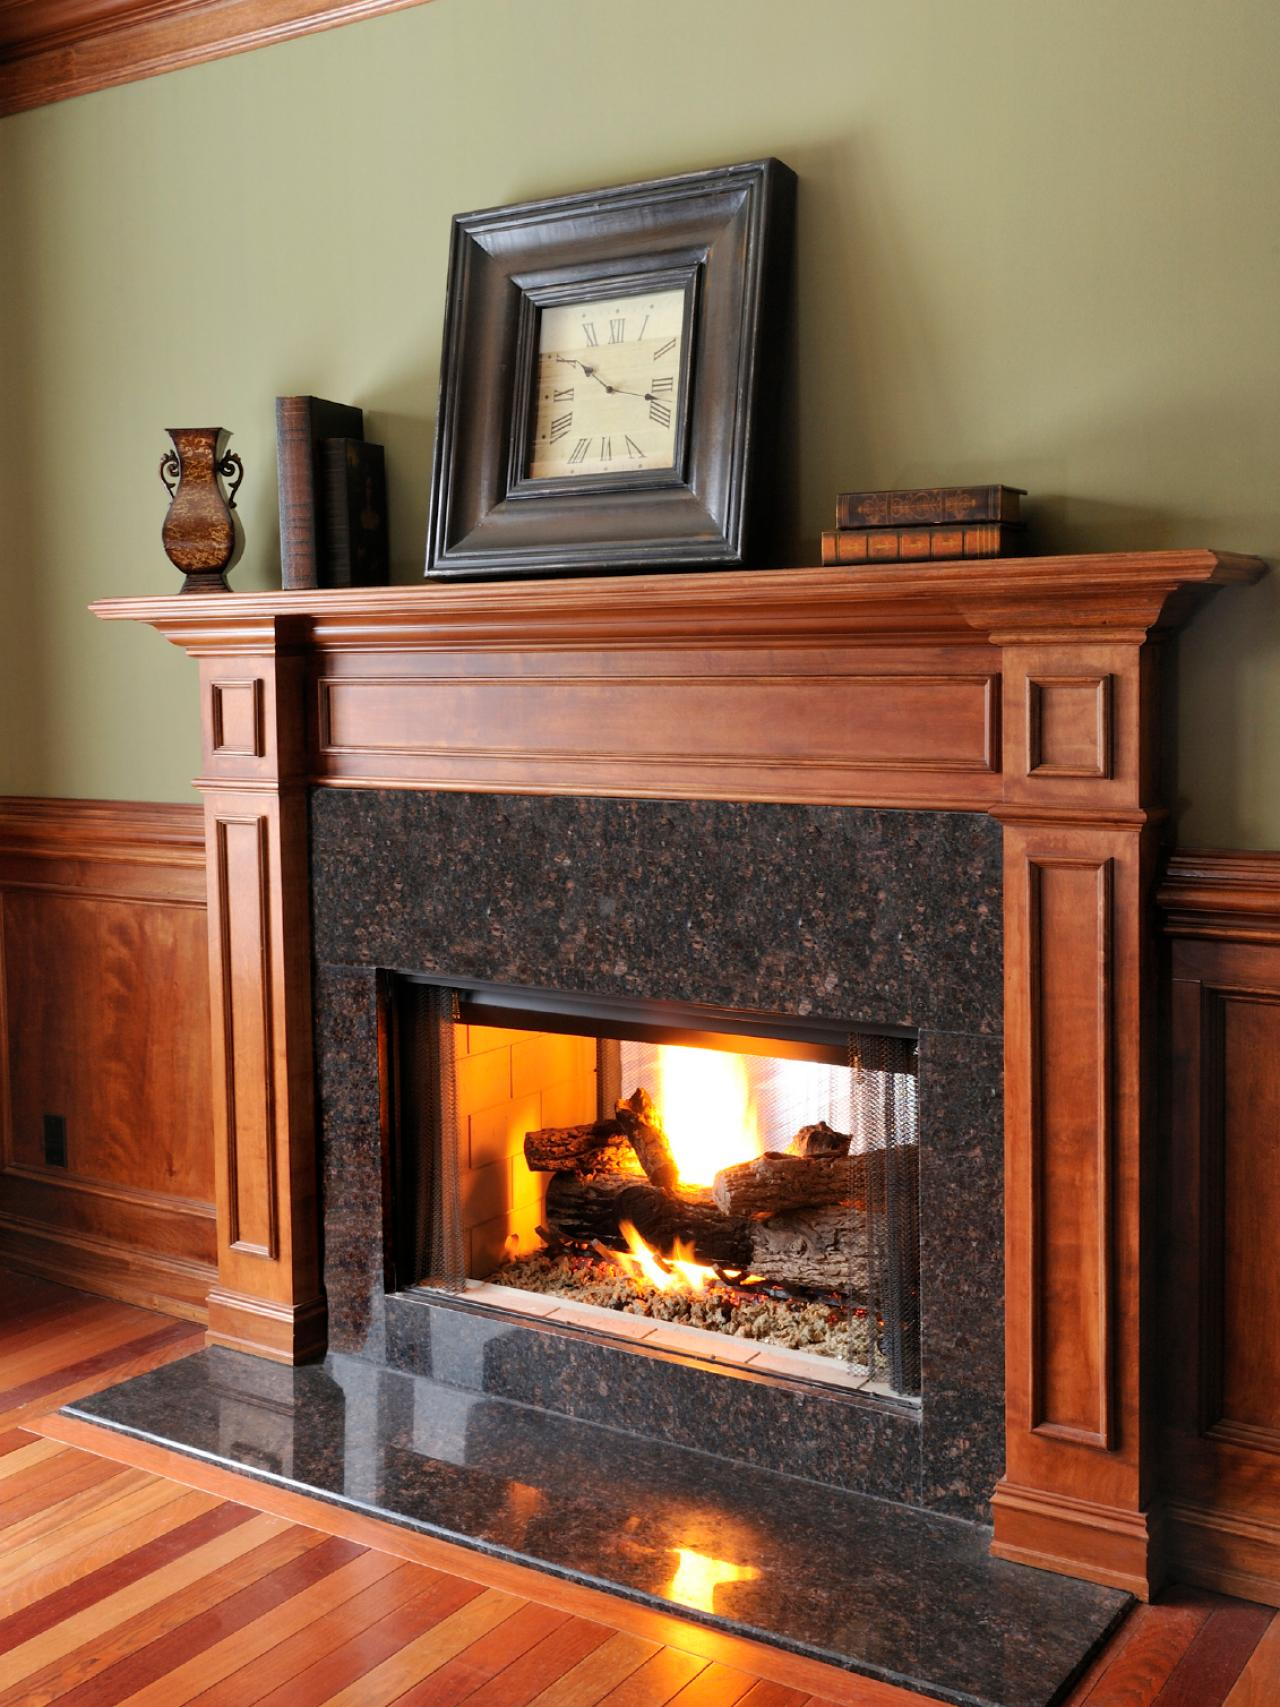 All about fireplaces and fireplace surrounds diy Fireplace surround ideas